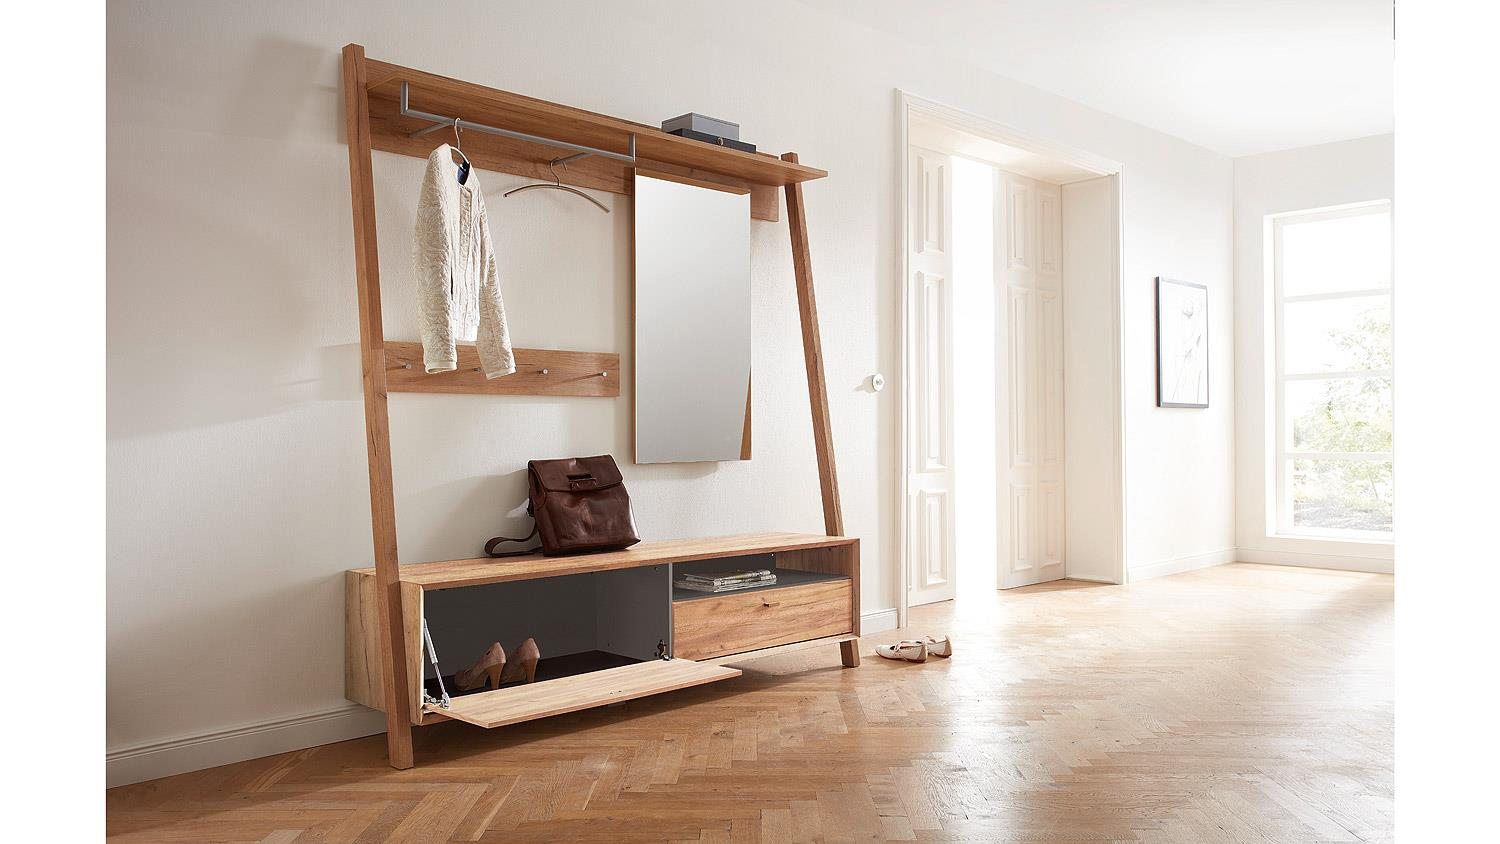 garderobe calvi flurm bel in navarra eiche und steingrau von germania. Black Bedroom Furniture Sets. Home Design Ideas